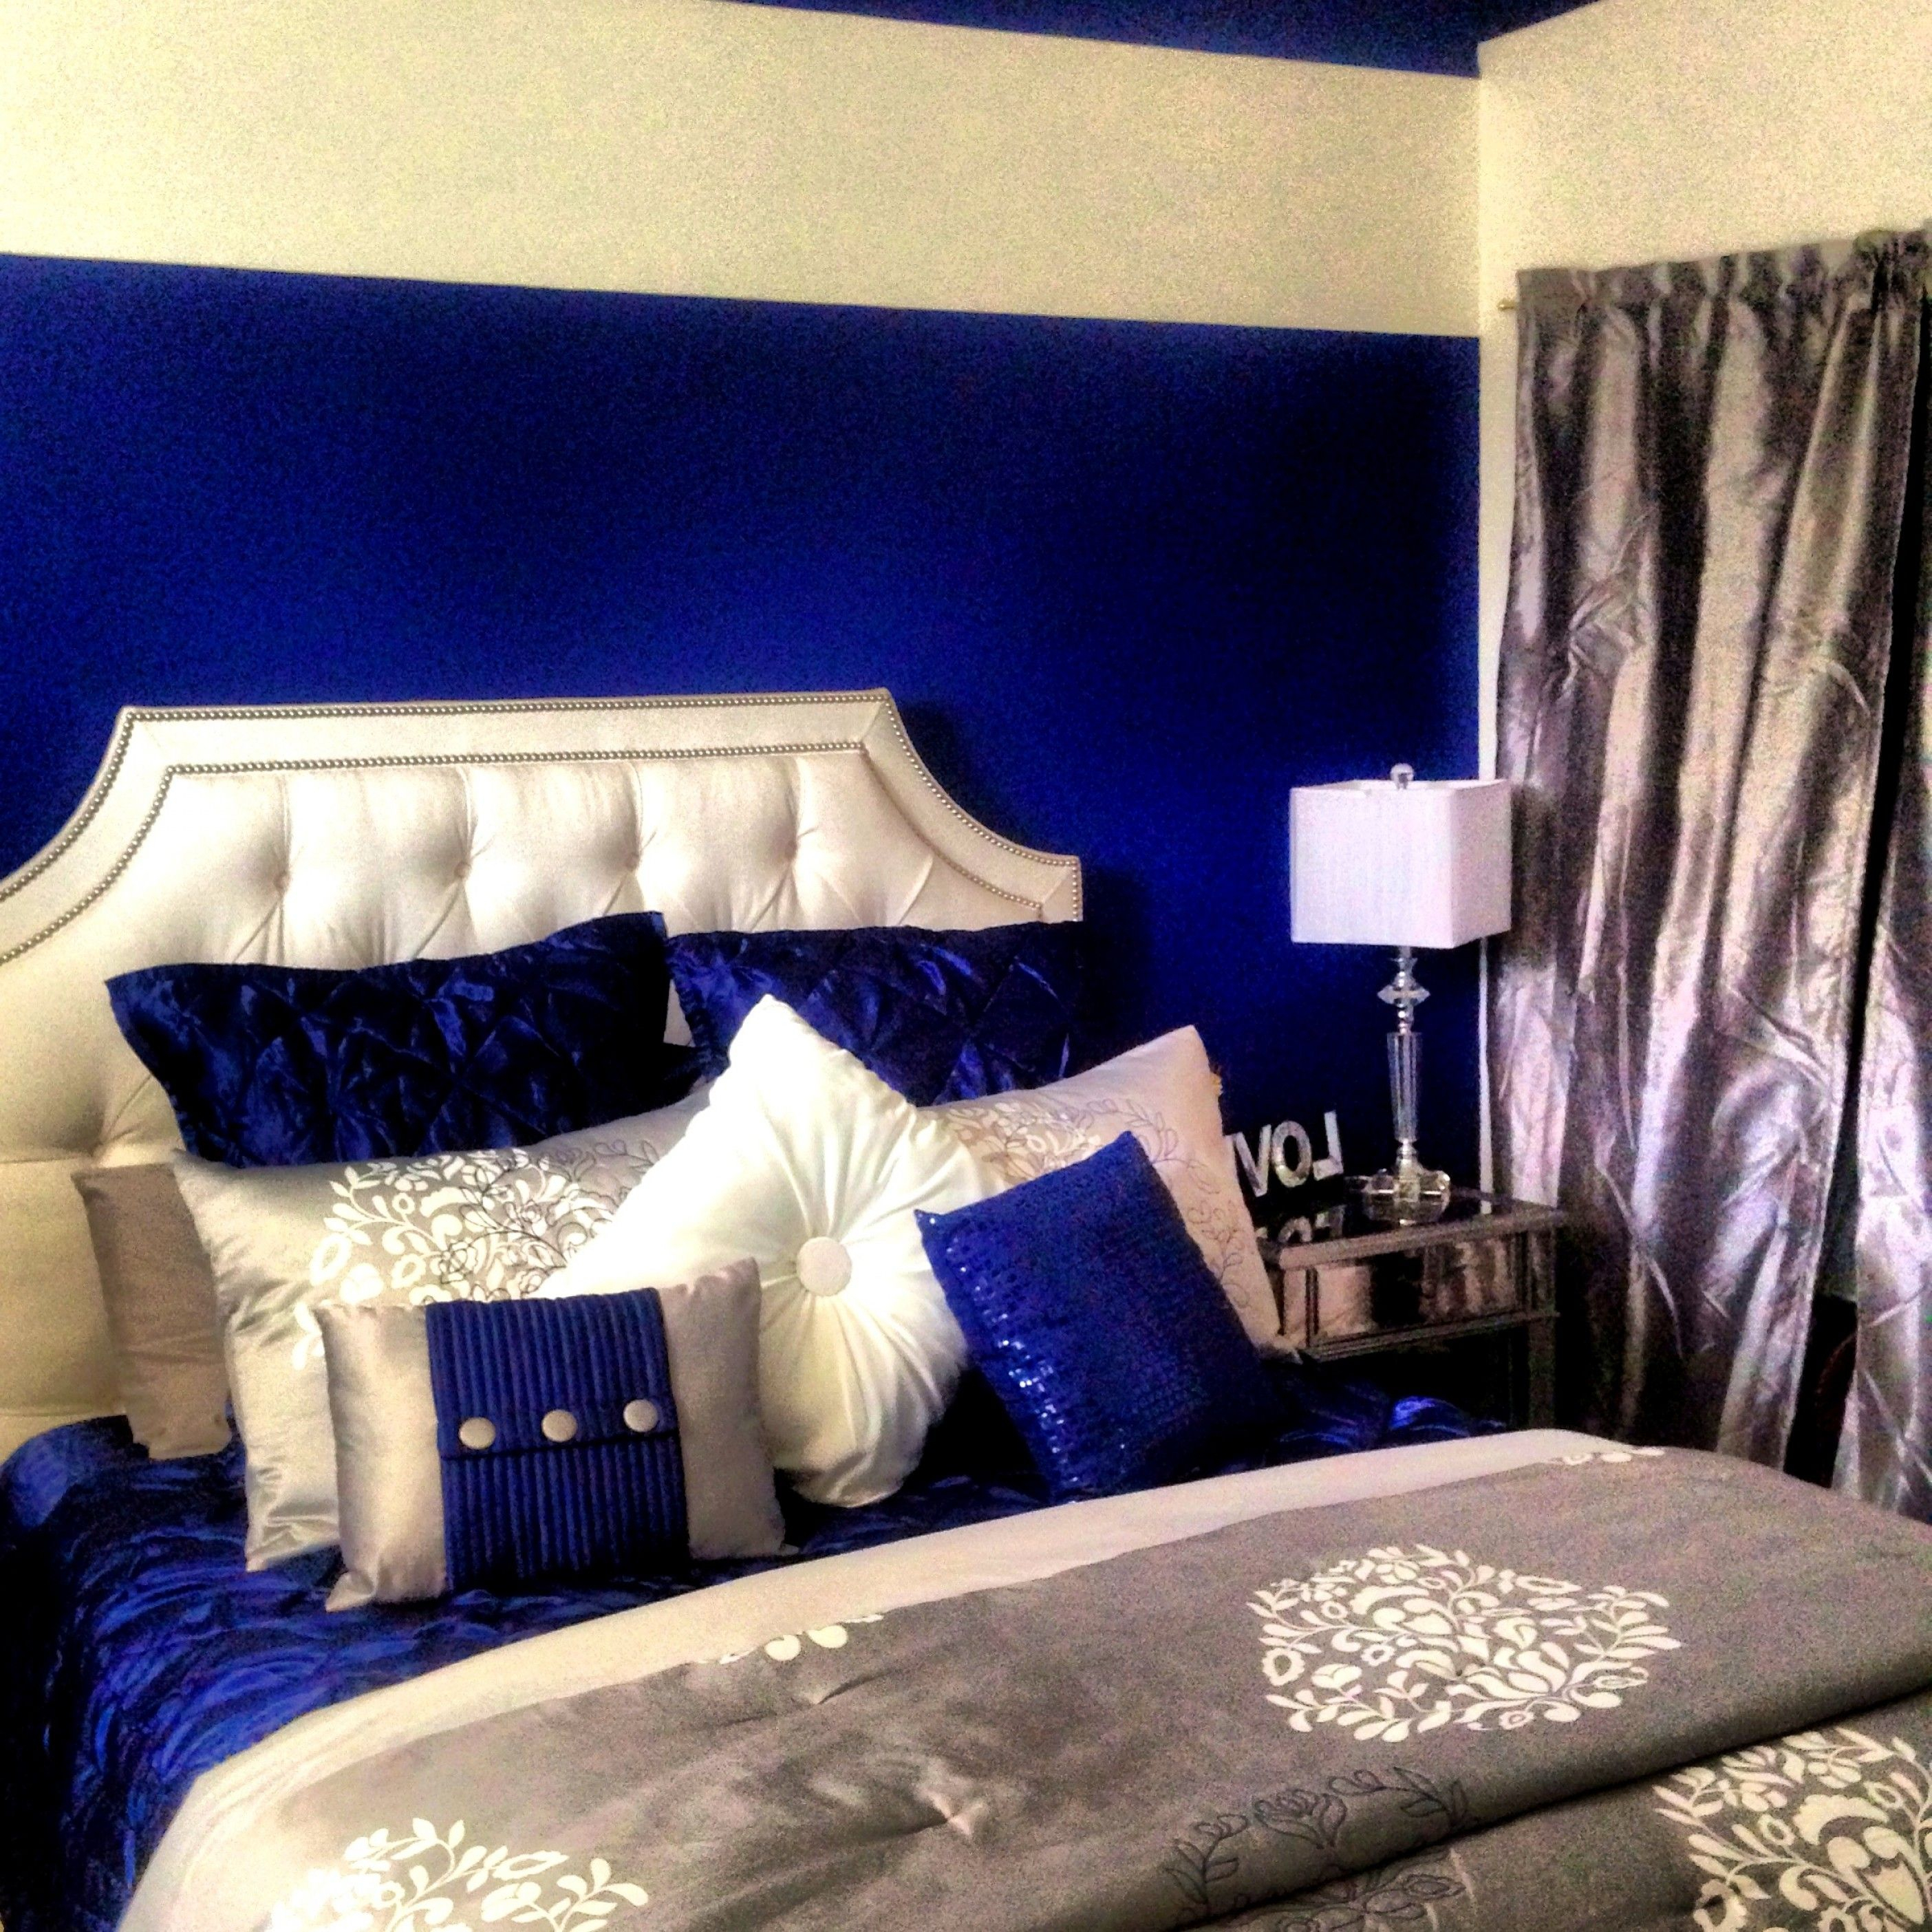 10 Amazing Black And Blue Bedroom Ideas royal blue and black bedroom ideas home sweet home blue bedroom 2020